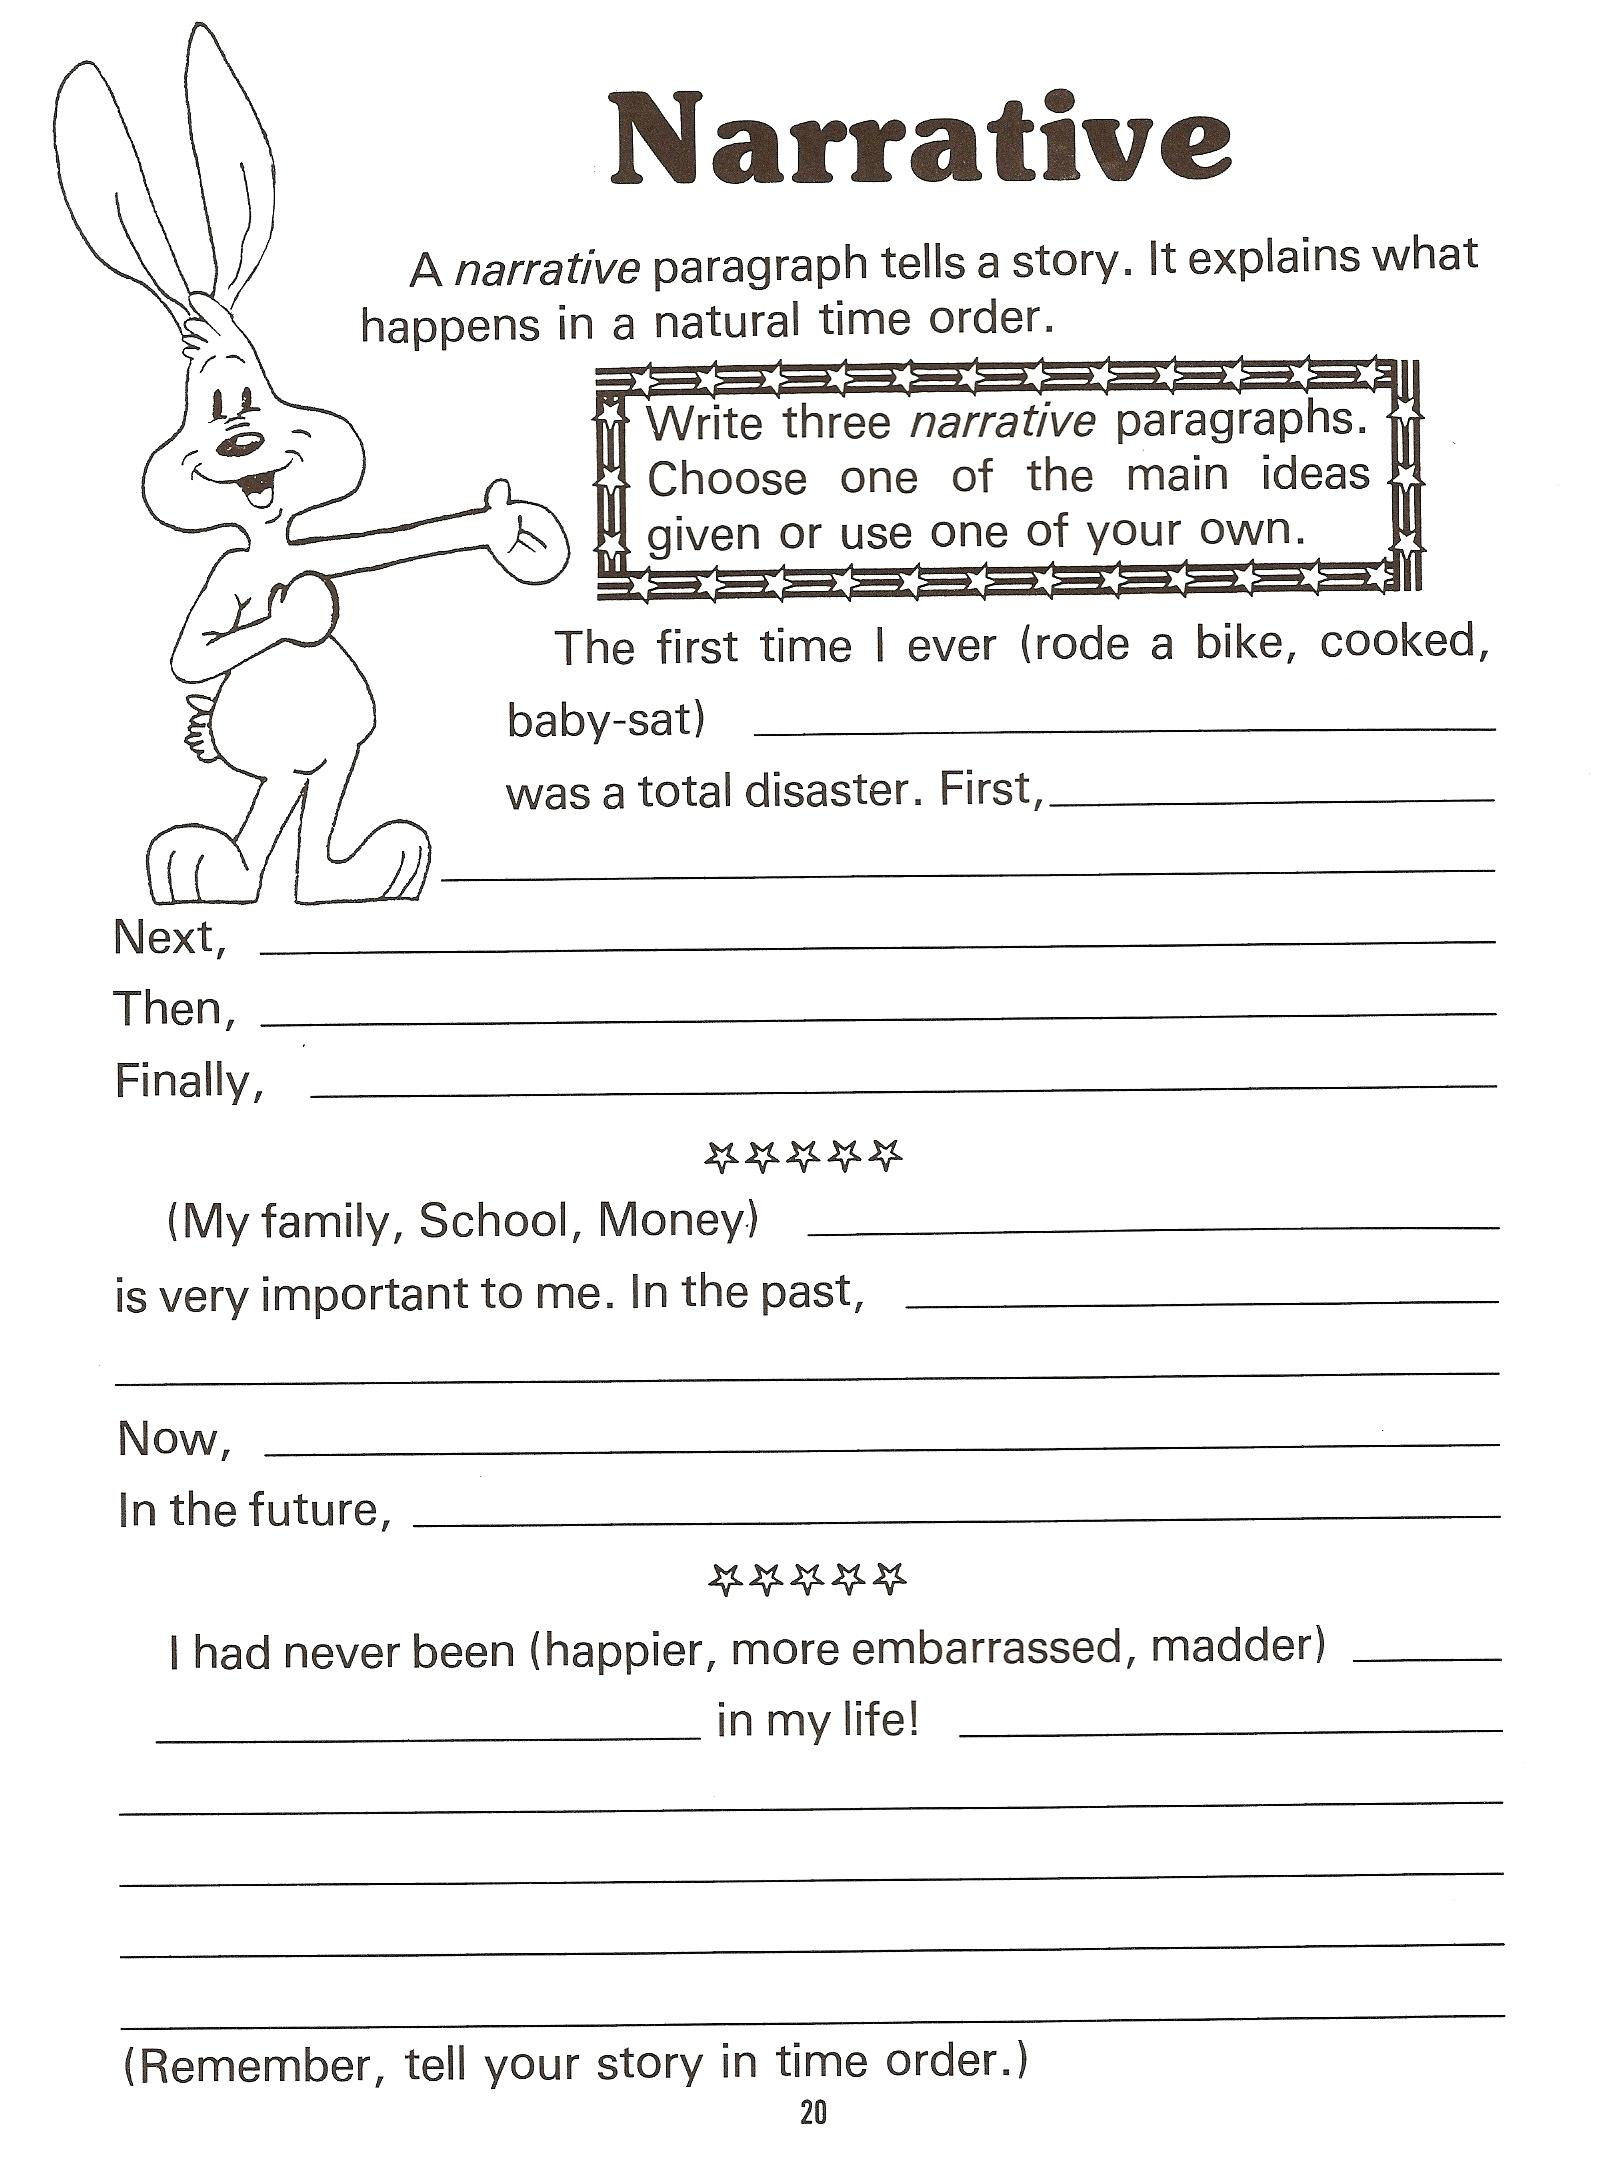 010 Essay Exampletive Topics For College Students Resume Writing Services In Credit Cart Terminal Paper Literacy Unforgettable Narrative Prompts Ideas Personal Full